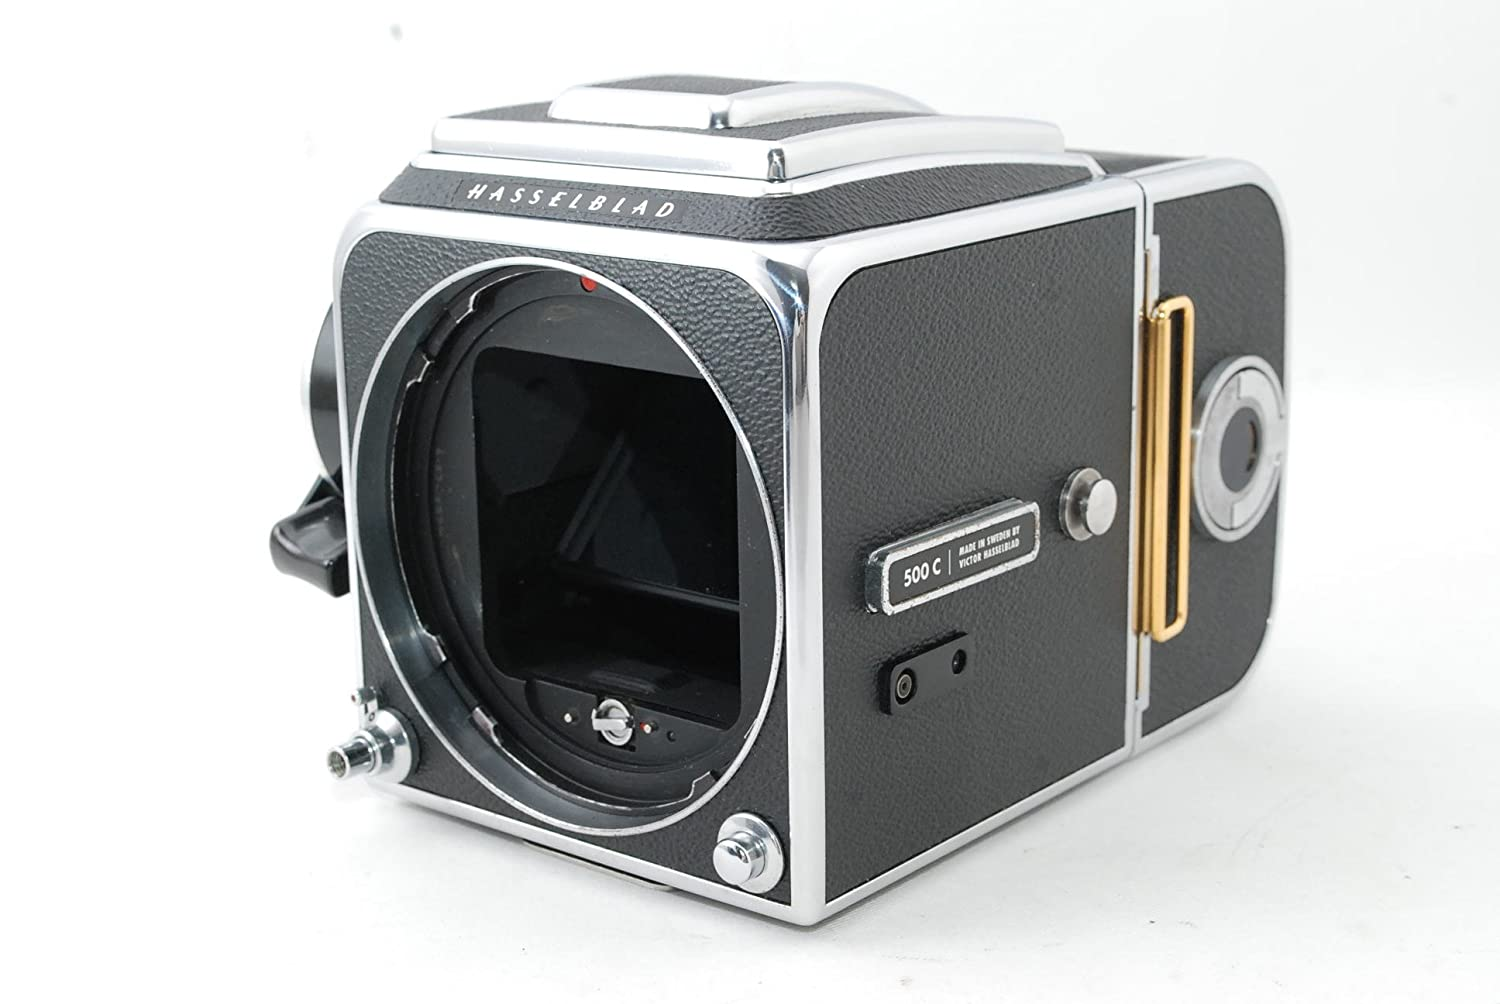 Hasselblad 500C 120mm Film Camera - Serviced: Amazon co uk: Camera